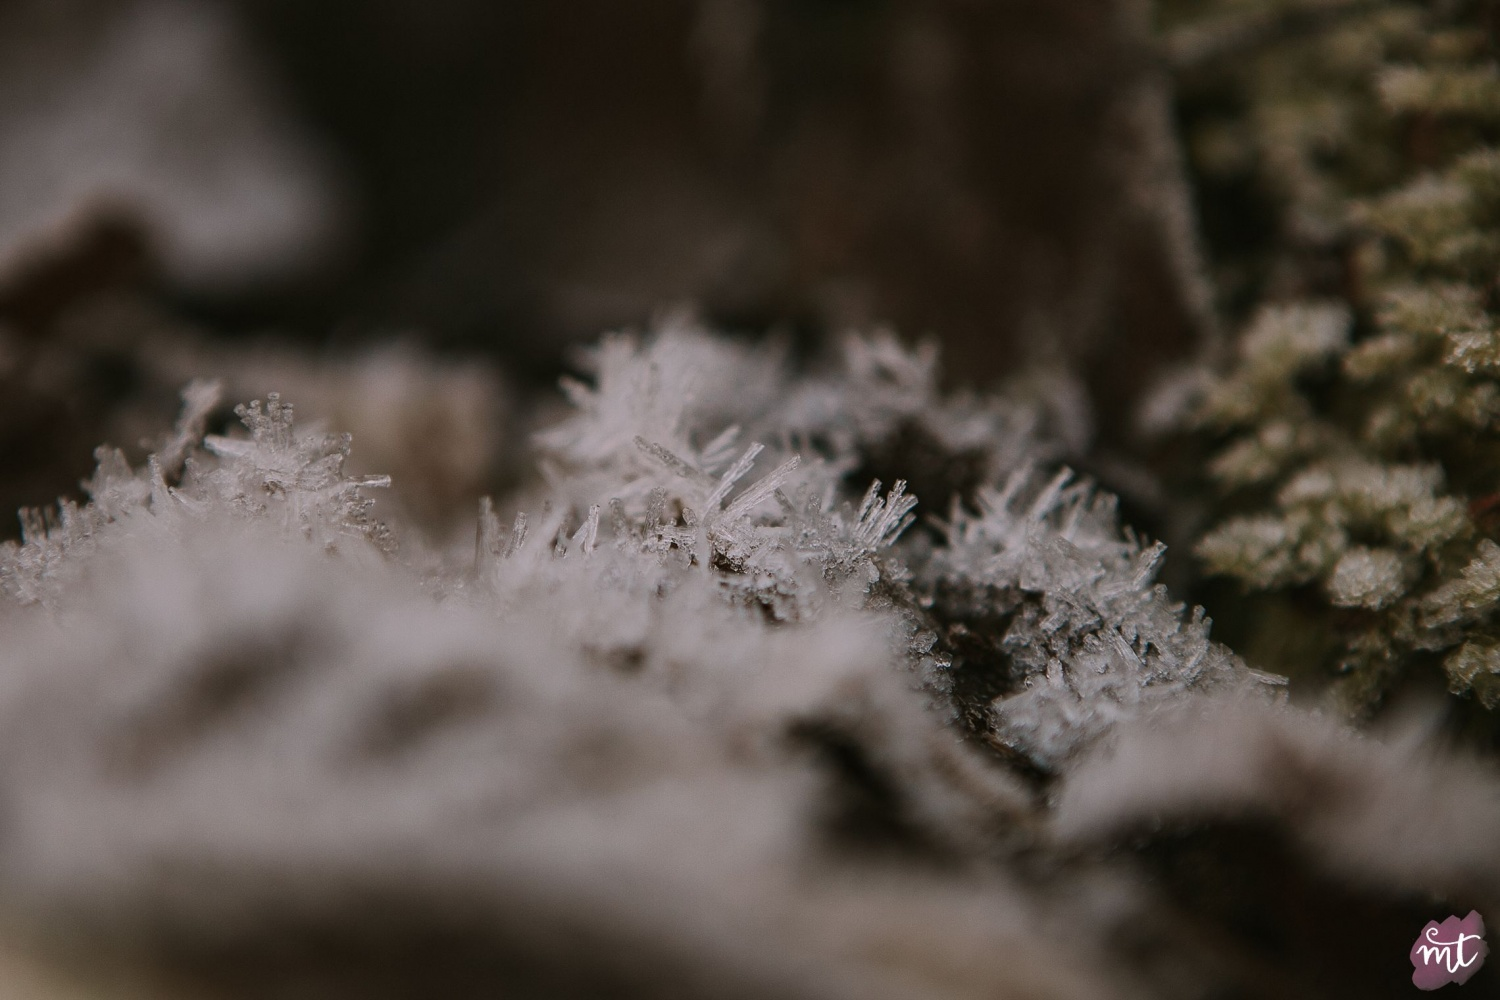 Seasons, Winter, Natural Light, UK Photographer, Real Life, Mother Nature, Jack Frost, Frost, Seasons: Spring, Summer, Autumn Winter English countryside